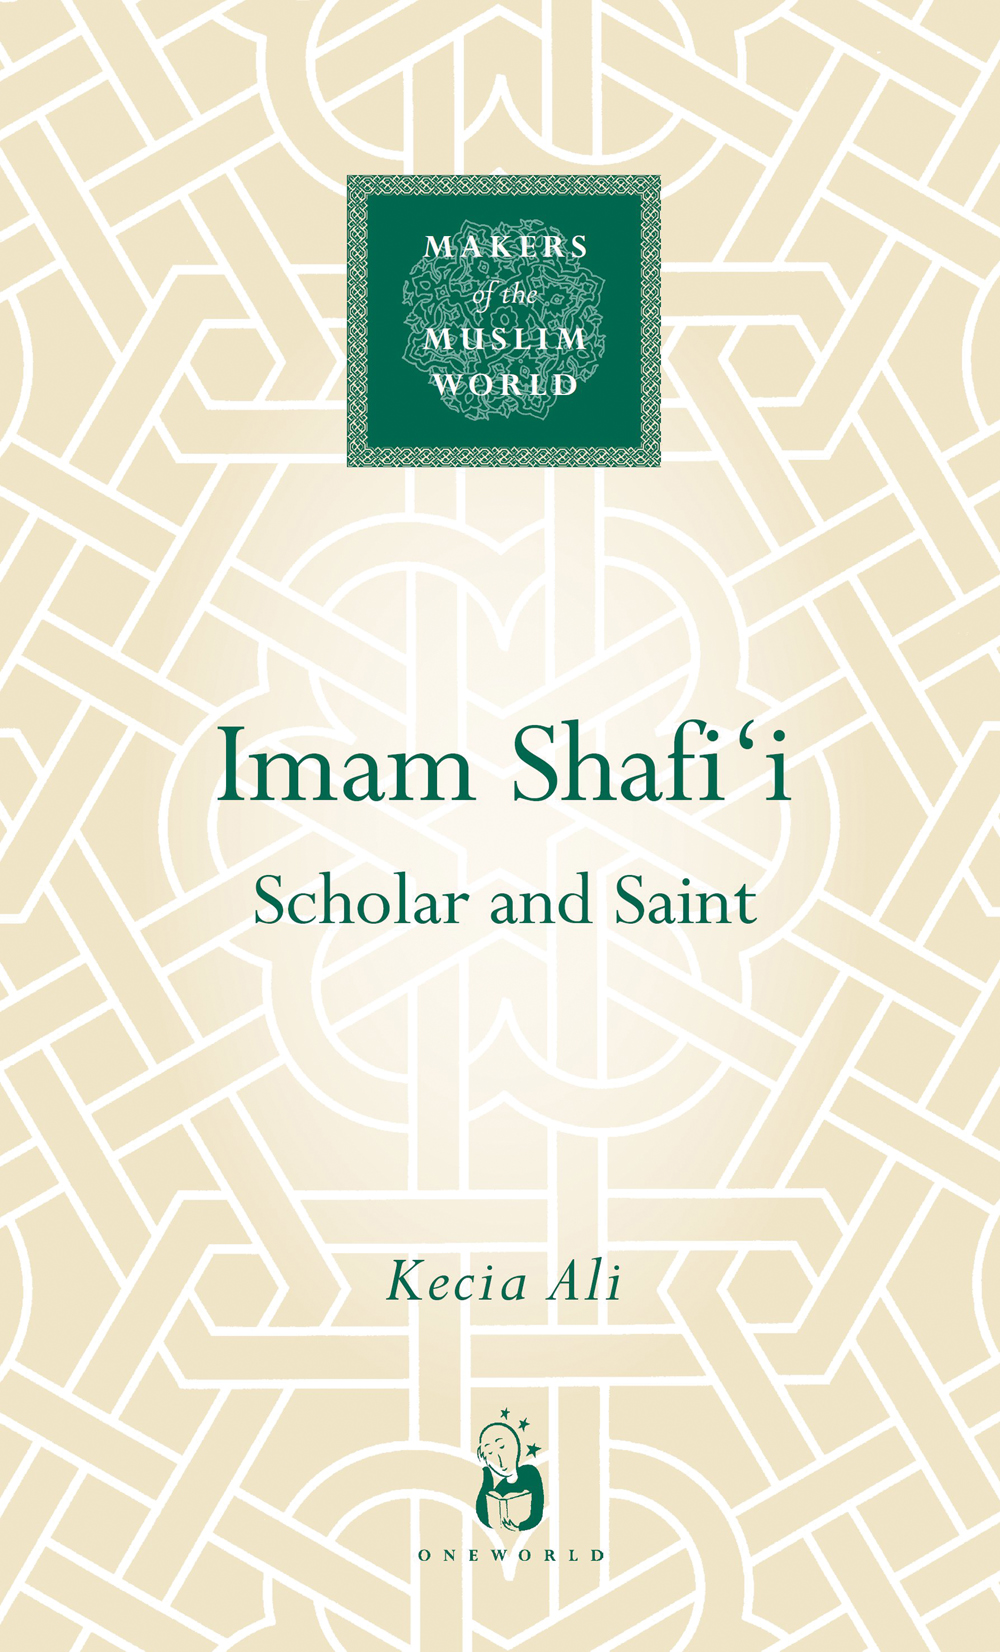 muhammad ibn idris al shafiis methodical legal reasoning Abu ʿabdillah muhammad ibn idris al-shafi'i was a muslim jurist, who lived from (767 — 820 ce / 150 — 204 ah) often referred to as 'shaykh al-islam' he was one of the four great imams of which a legacy on juridical matters and teaching eventually led to the shafi'i school of fiqh (or madhhab) named after him hence he is often called imam al-shafi'i.